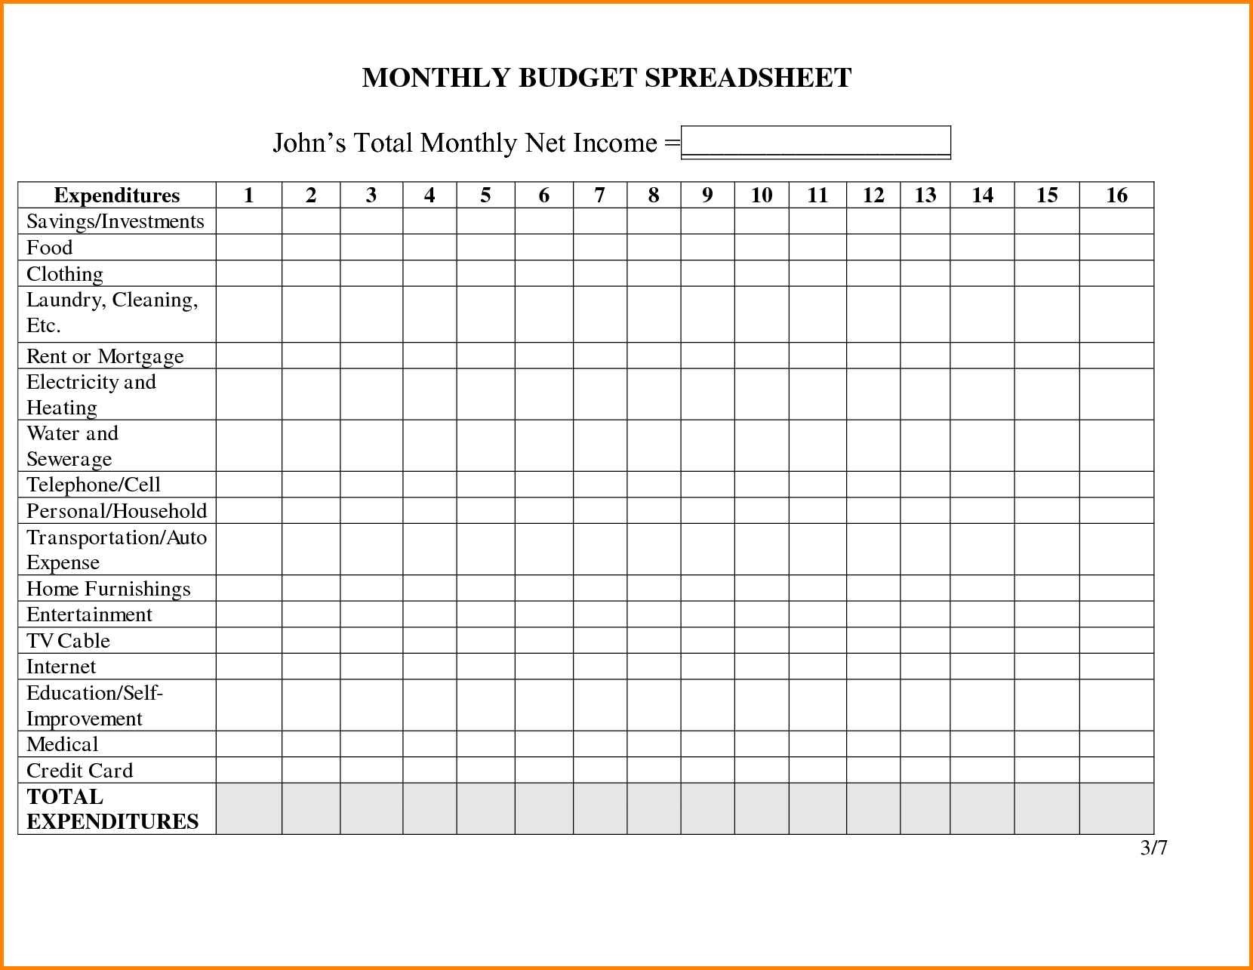 Free Spreadsheet Templates For Small Business New Template For With Free Spreadsheet Templates For Small Business